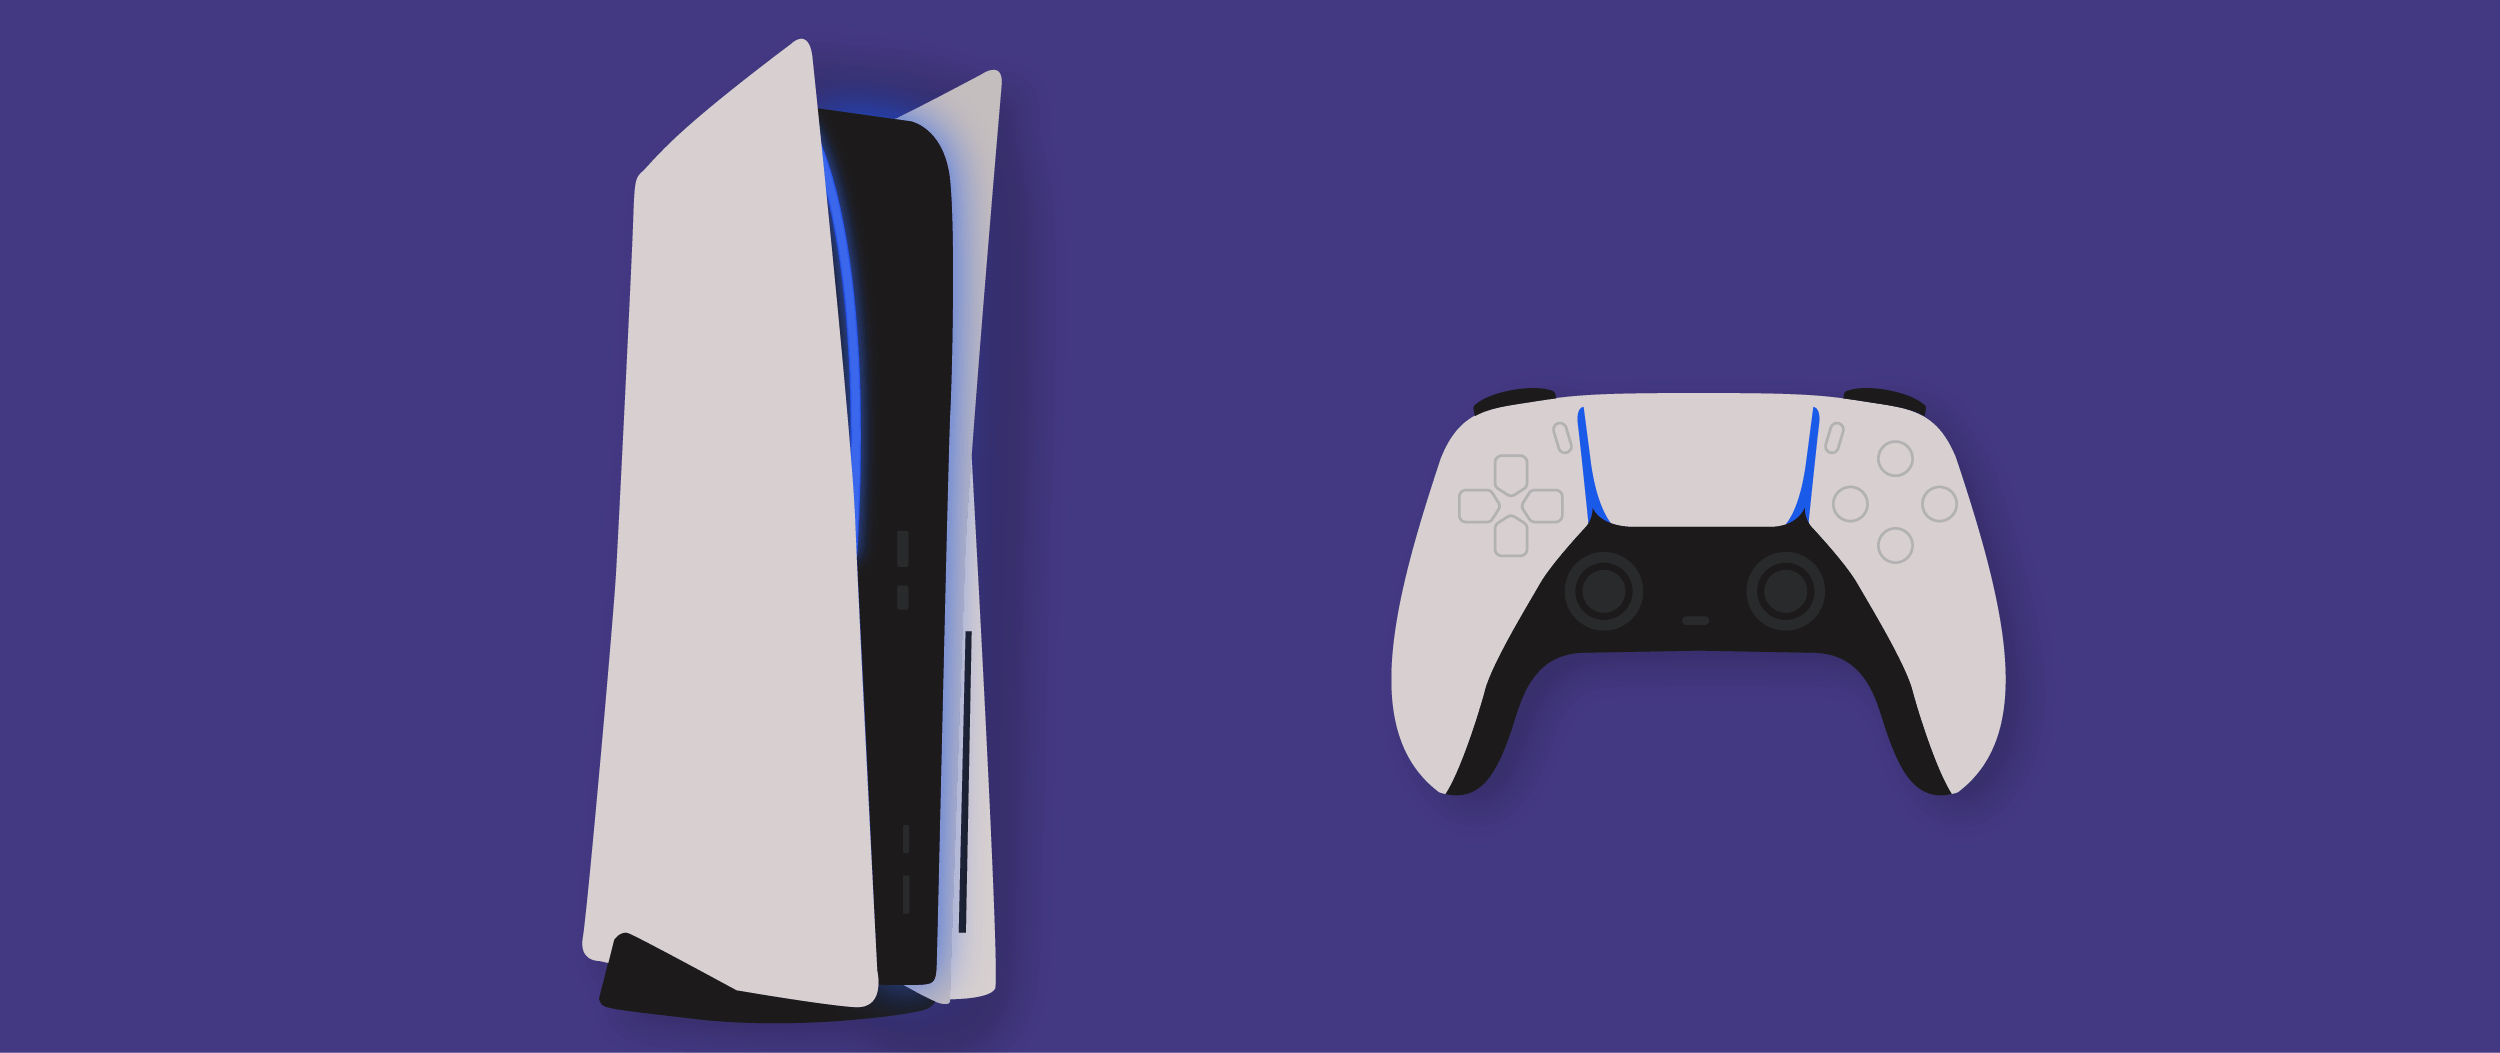 Banner graphic of the PS5 and PS5 controller